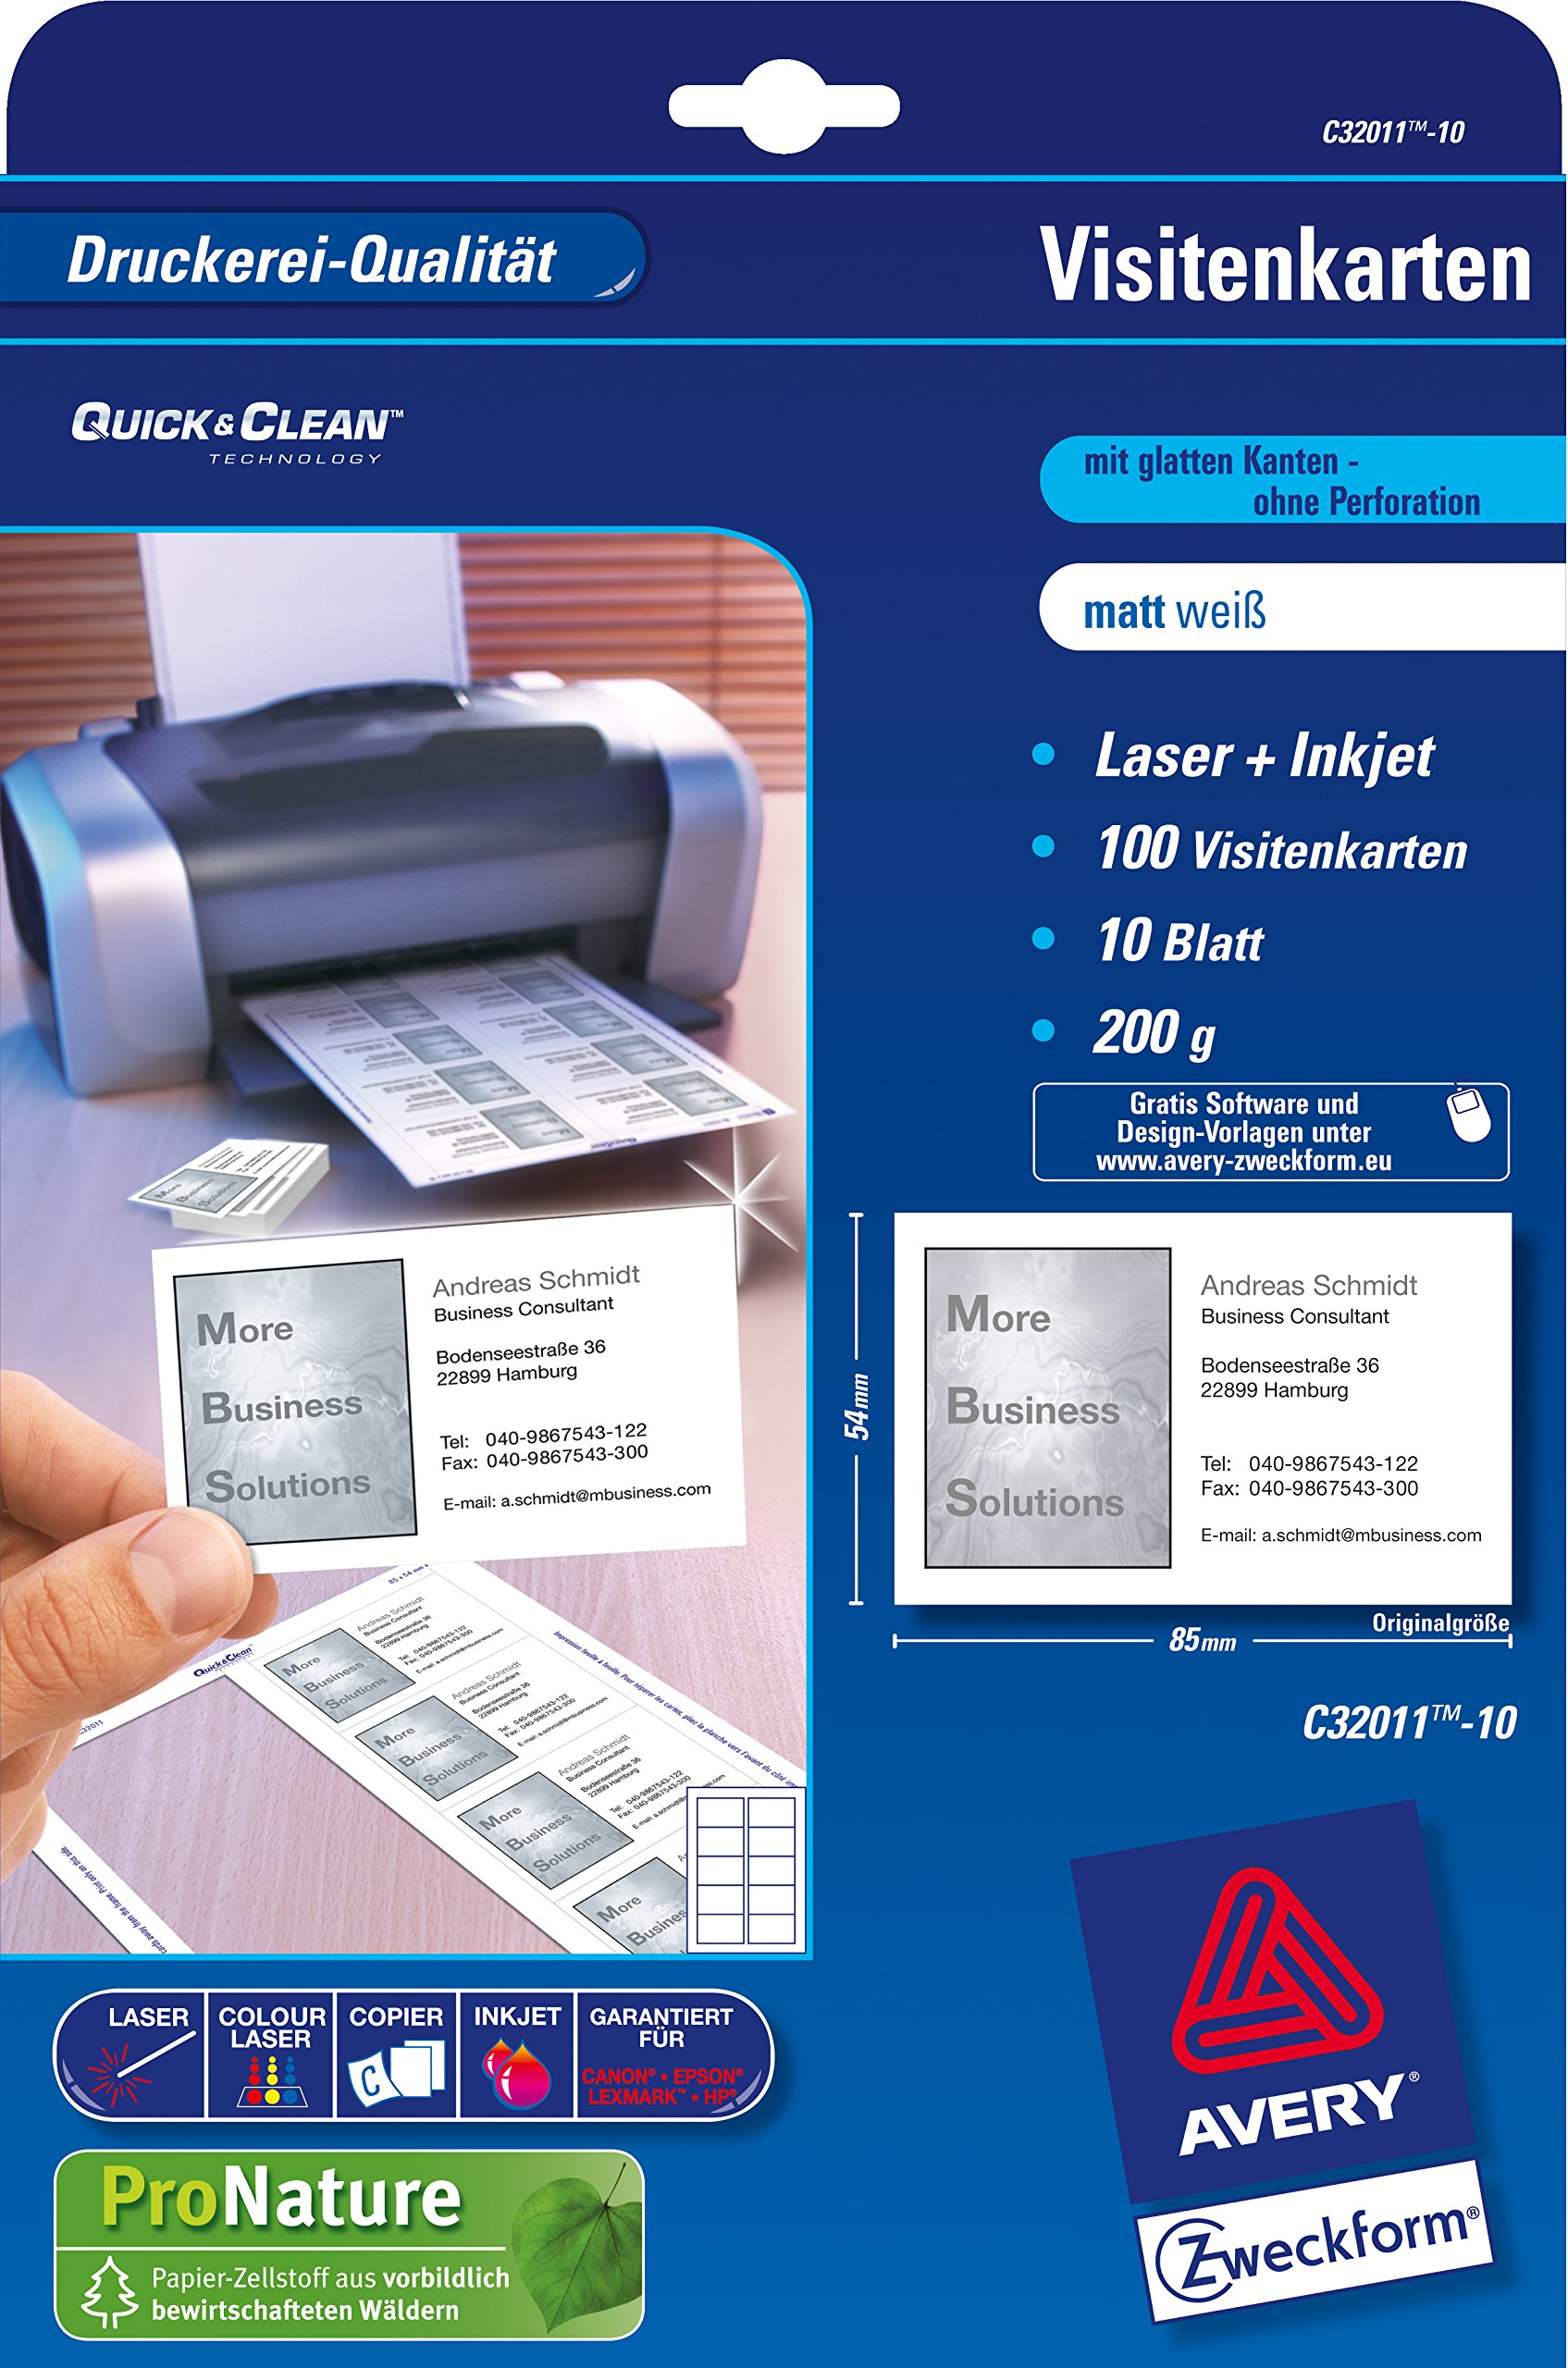 Avery Zweckform Business Cards Quick&Clean Inkjet Laser Copier 200 g/m² DIN A4 85 x 54 mm Matt White 5000 Cards 500 Sheets